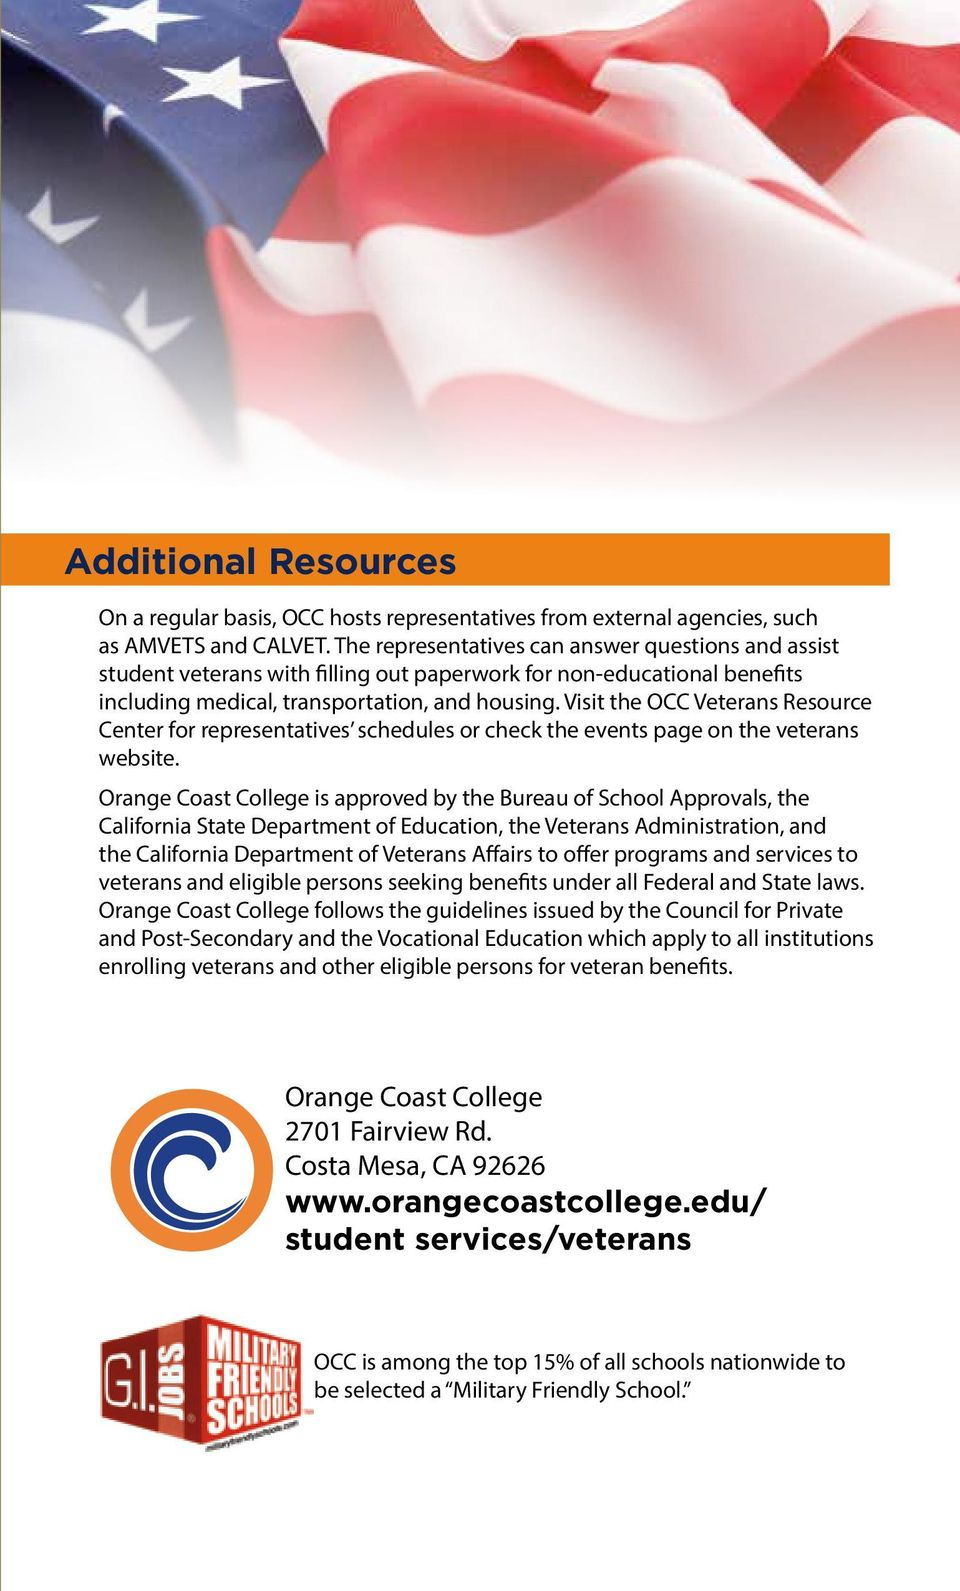 Visit the OCC Veterans Resource Center for representatives schedules or check the events page on the veterans website.